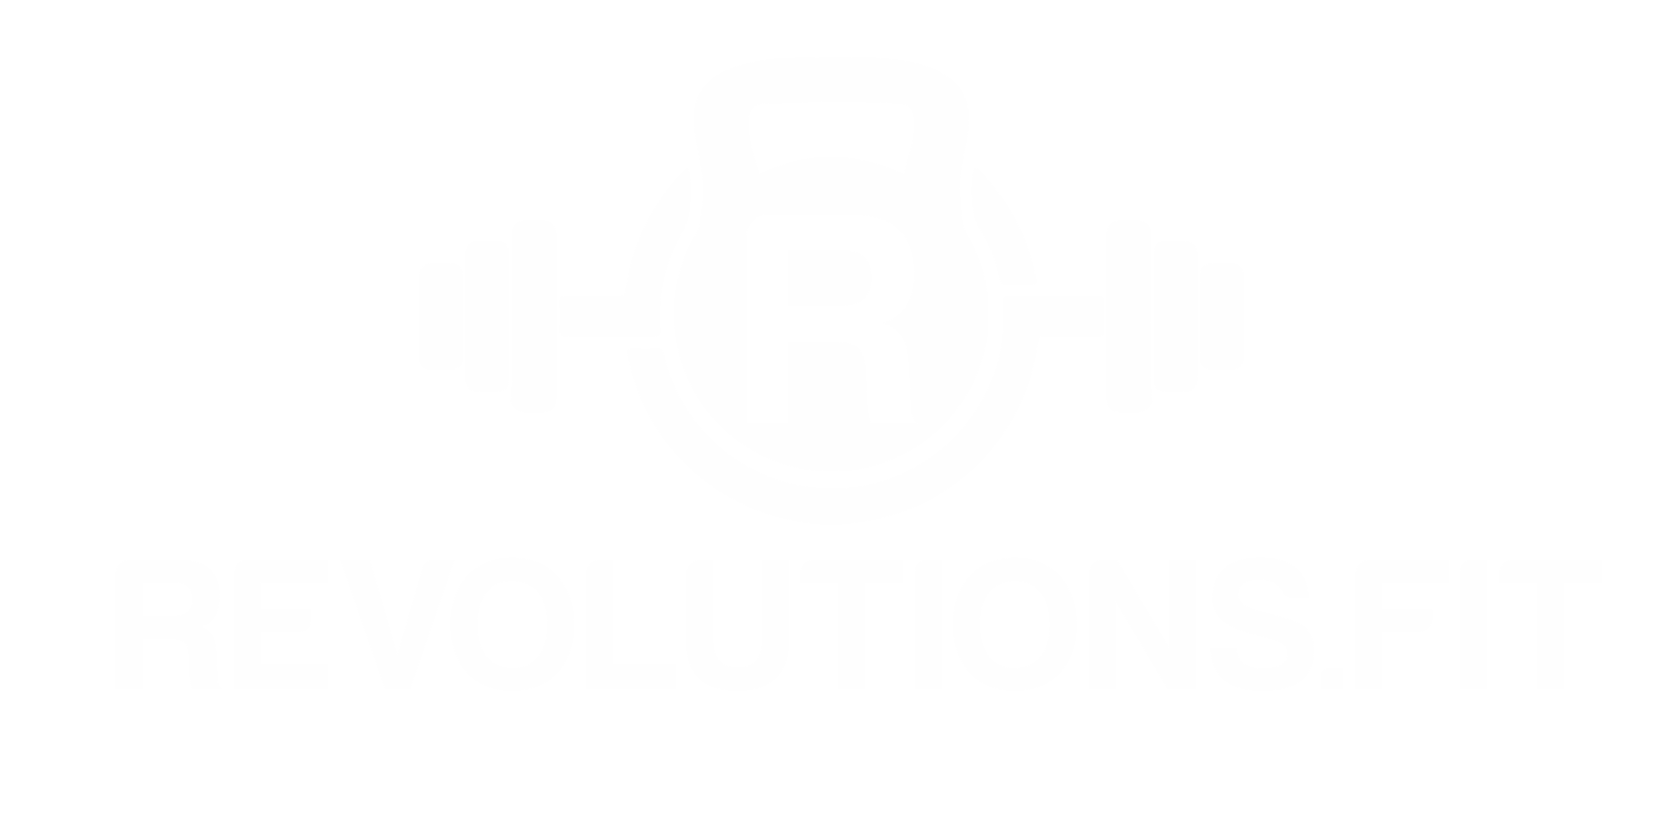 Revolutions.fit-white-2